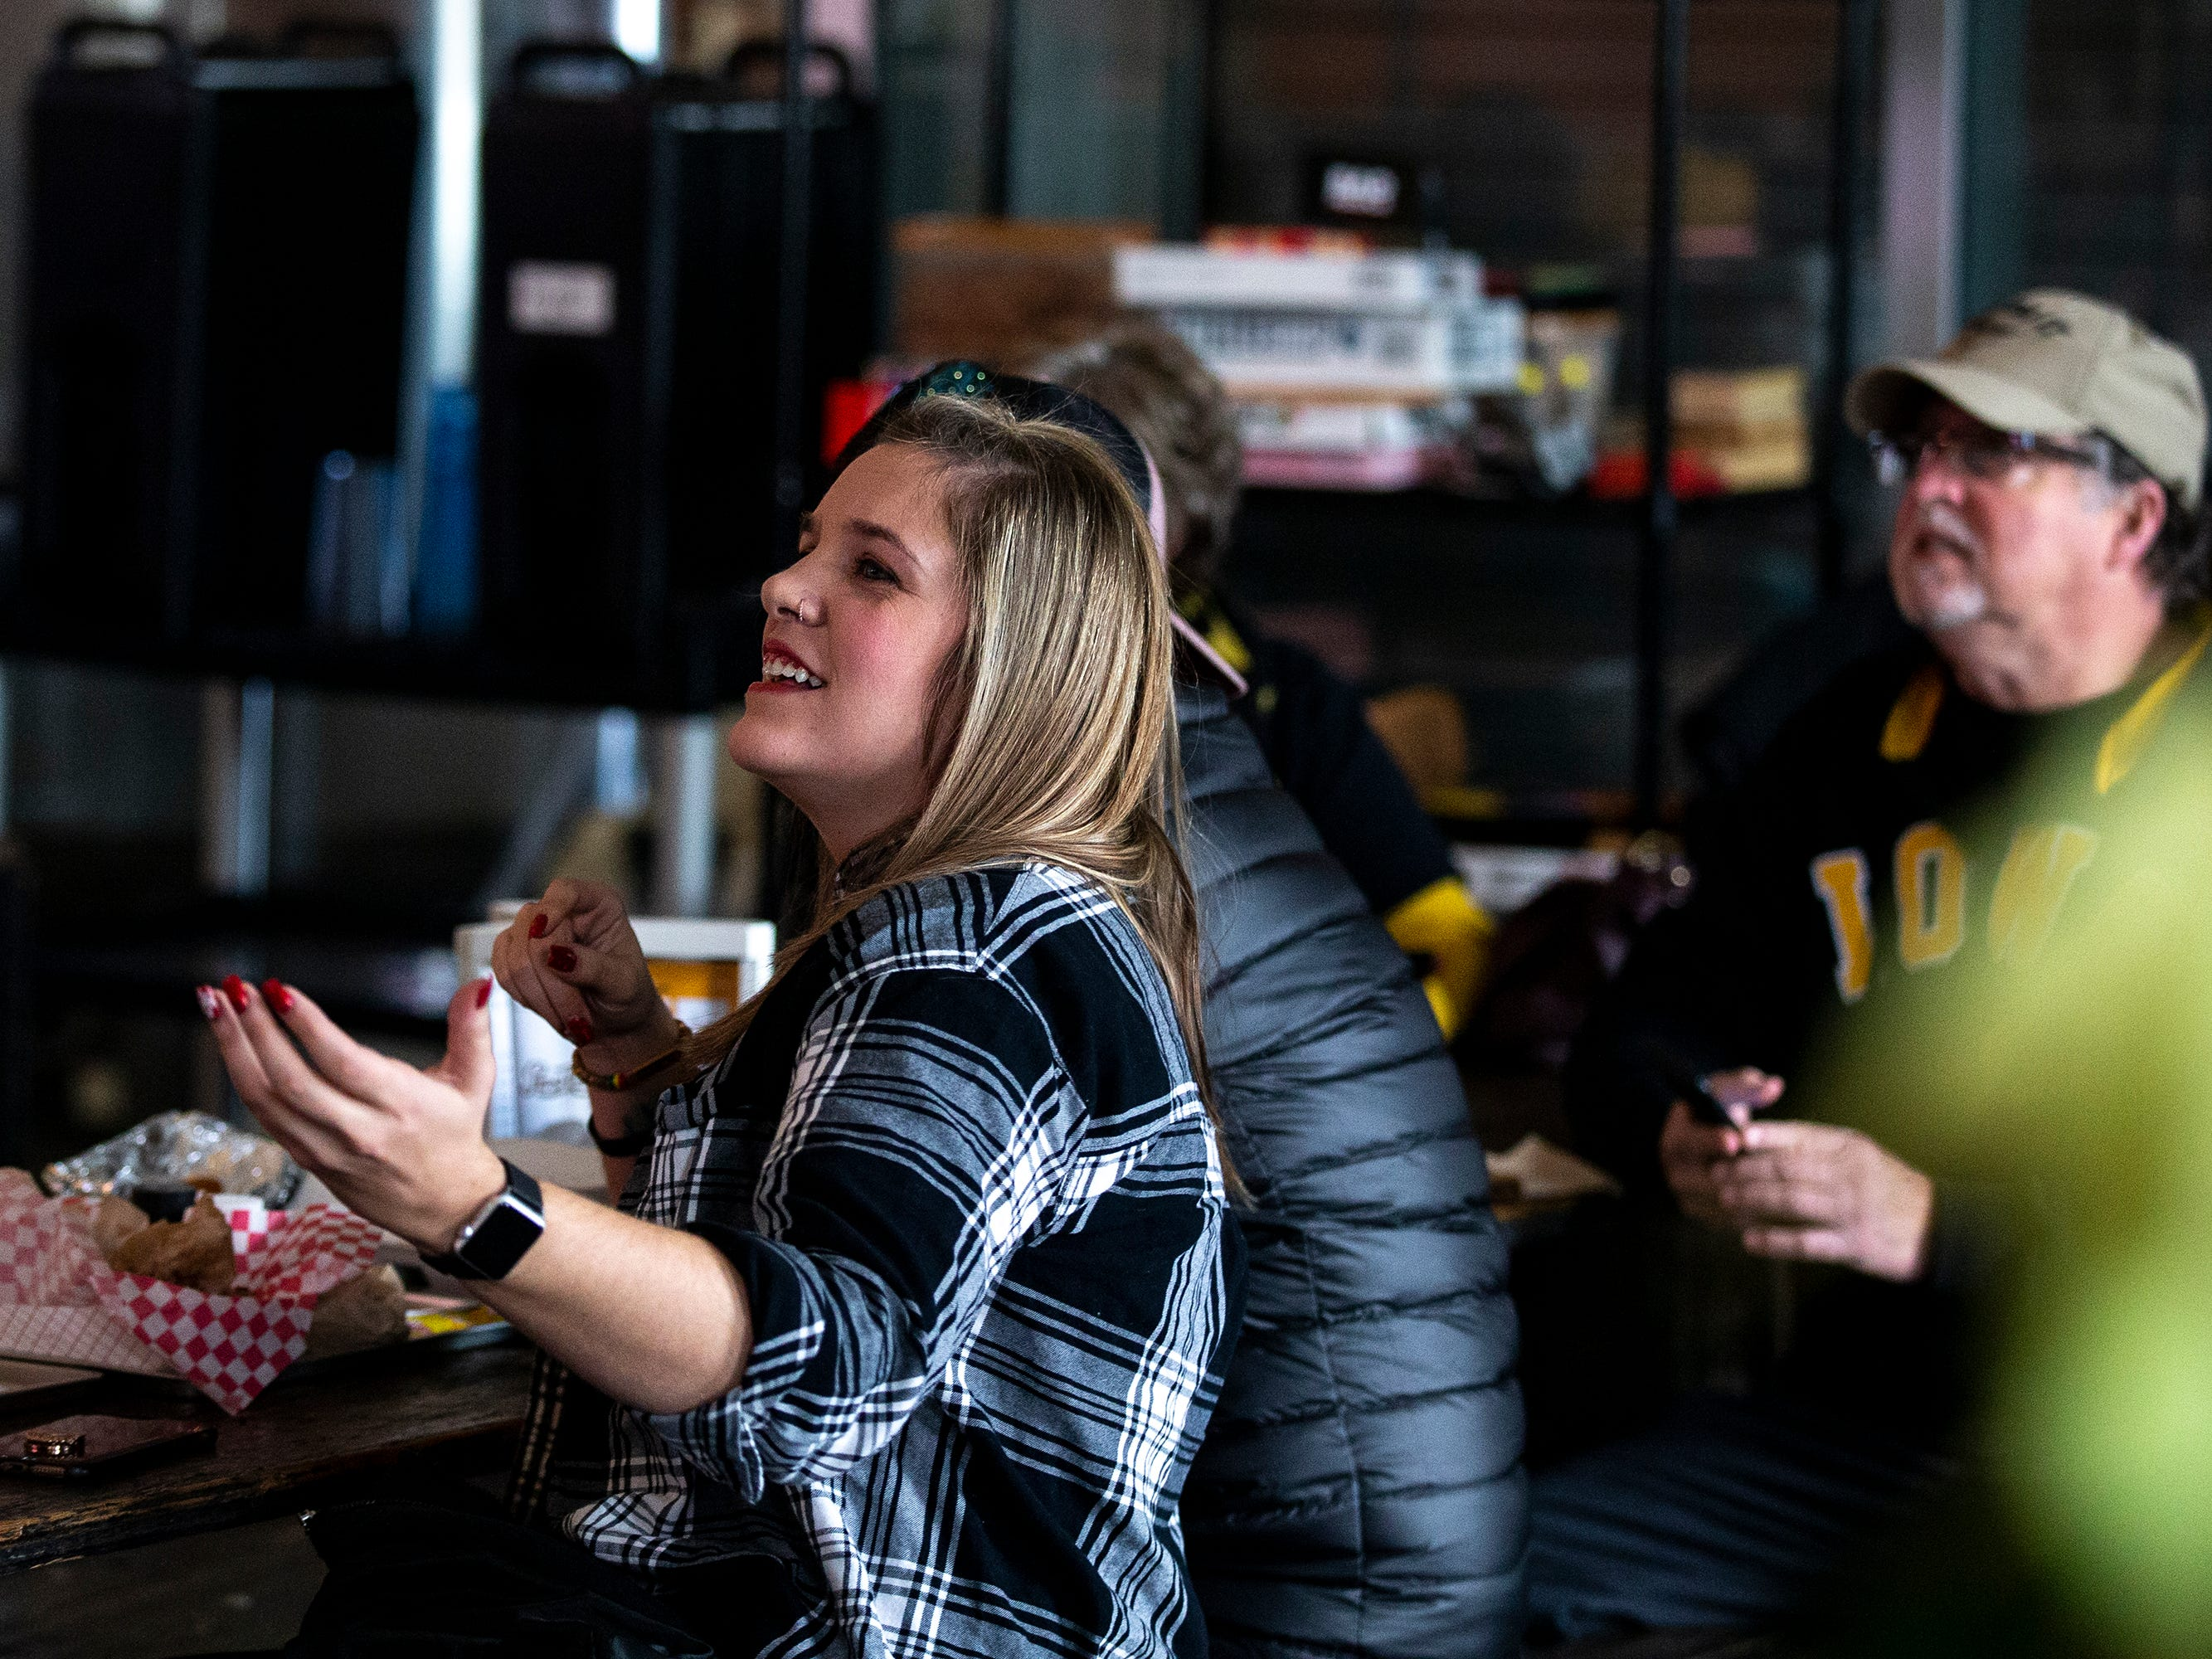 Kelsey Jenn, of Urbandale, watches the University of Iowa football team play in the Outback Bowl on Tuesday, Jan. 1, 2019, at The Hall in West Des Moines.